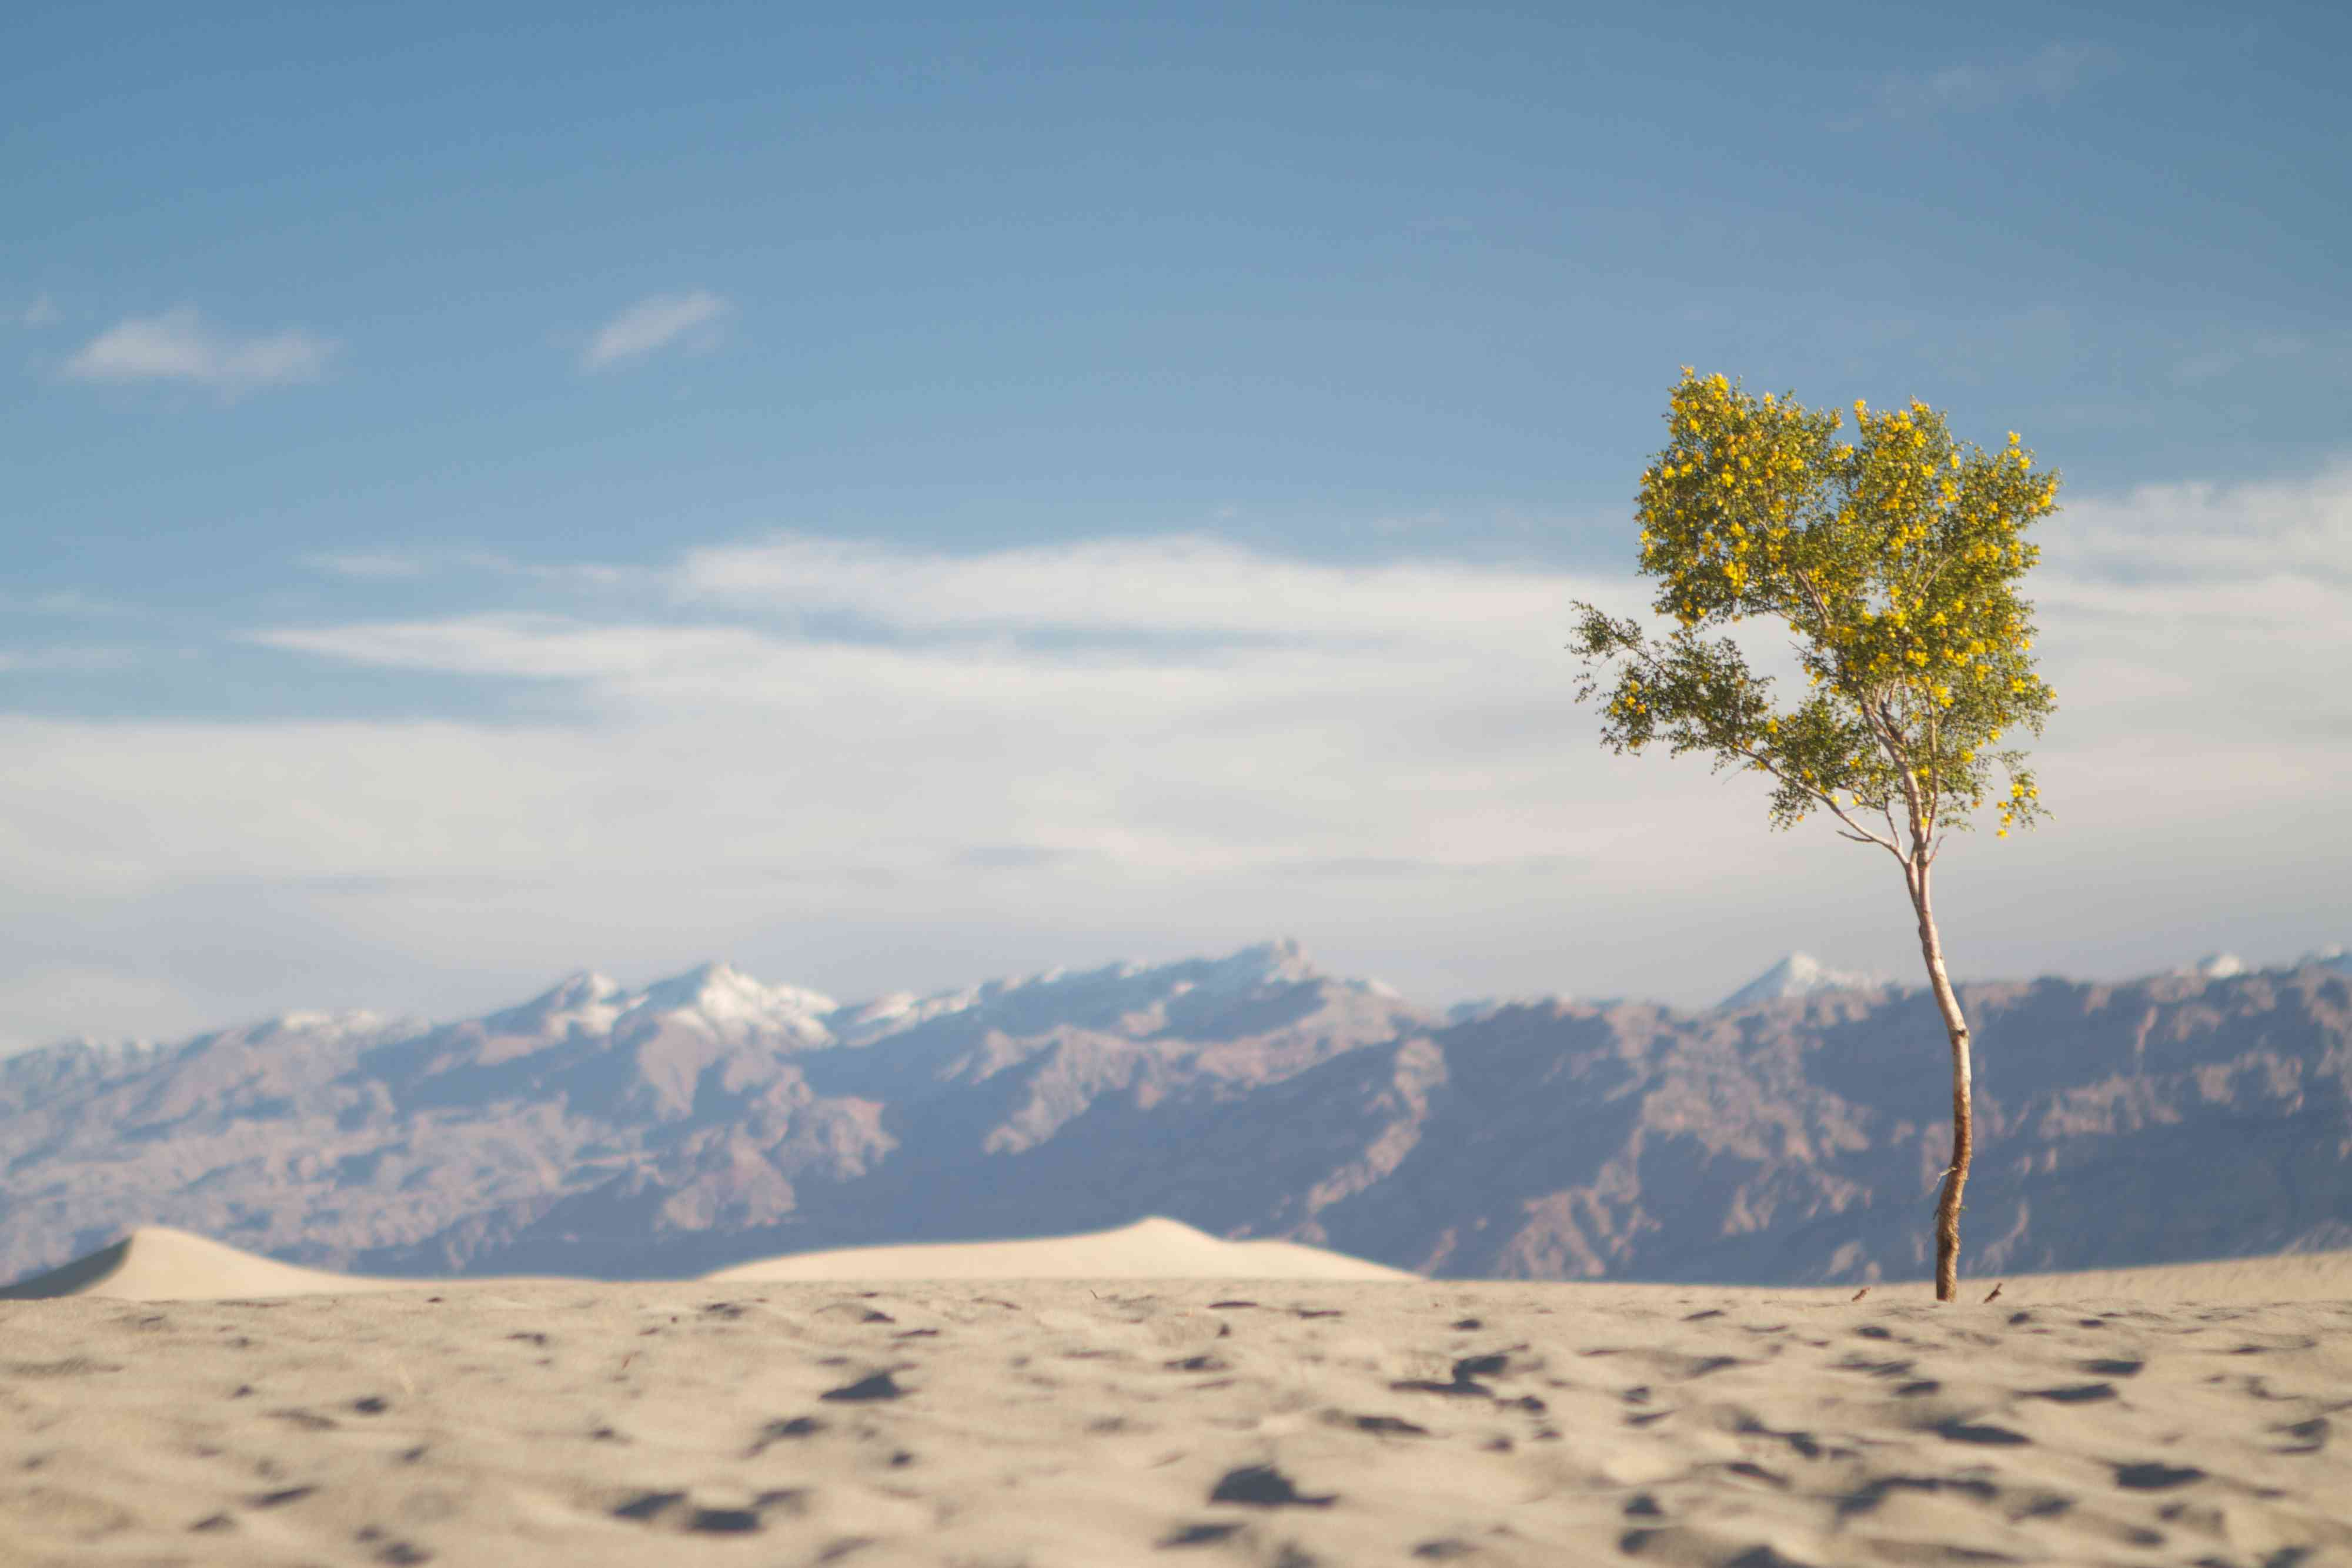 Death Valley National Park sand dunes with mesquite tree